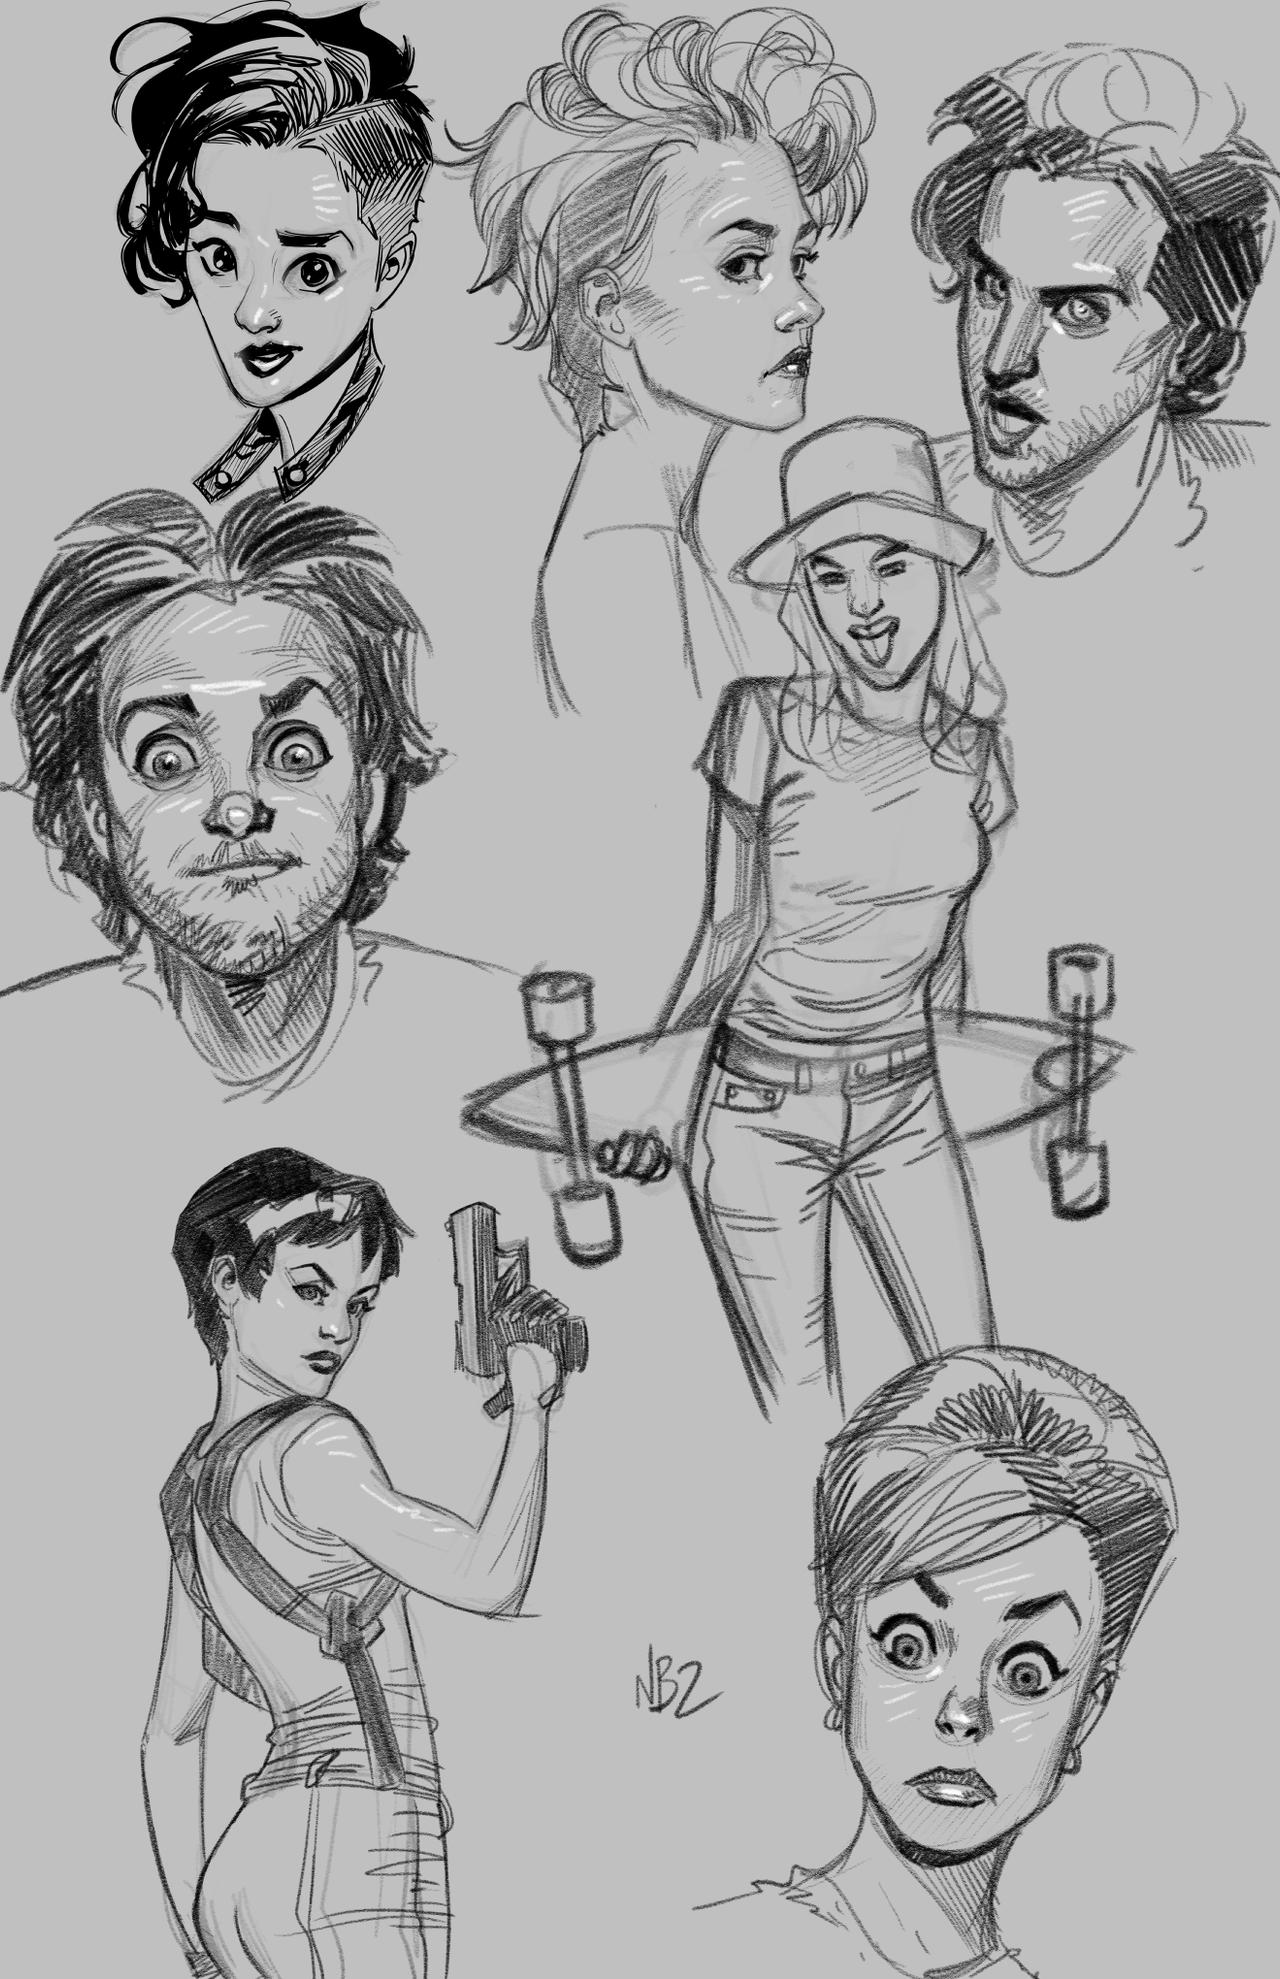 Warm up Sketches April 7th